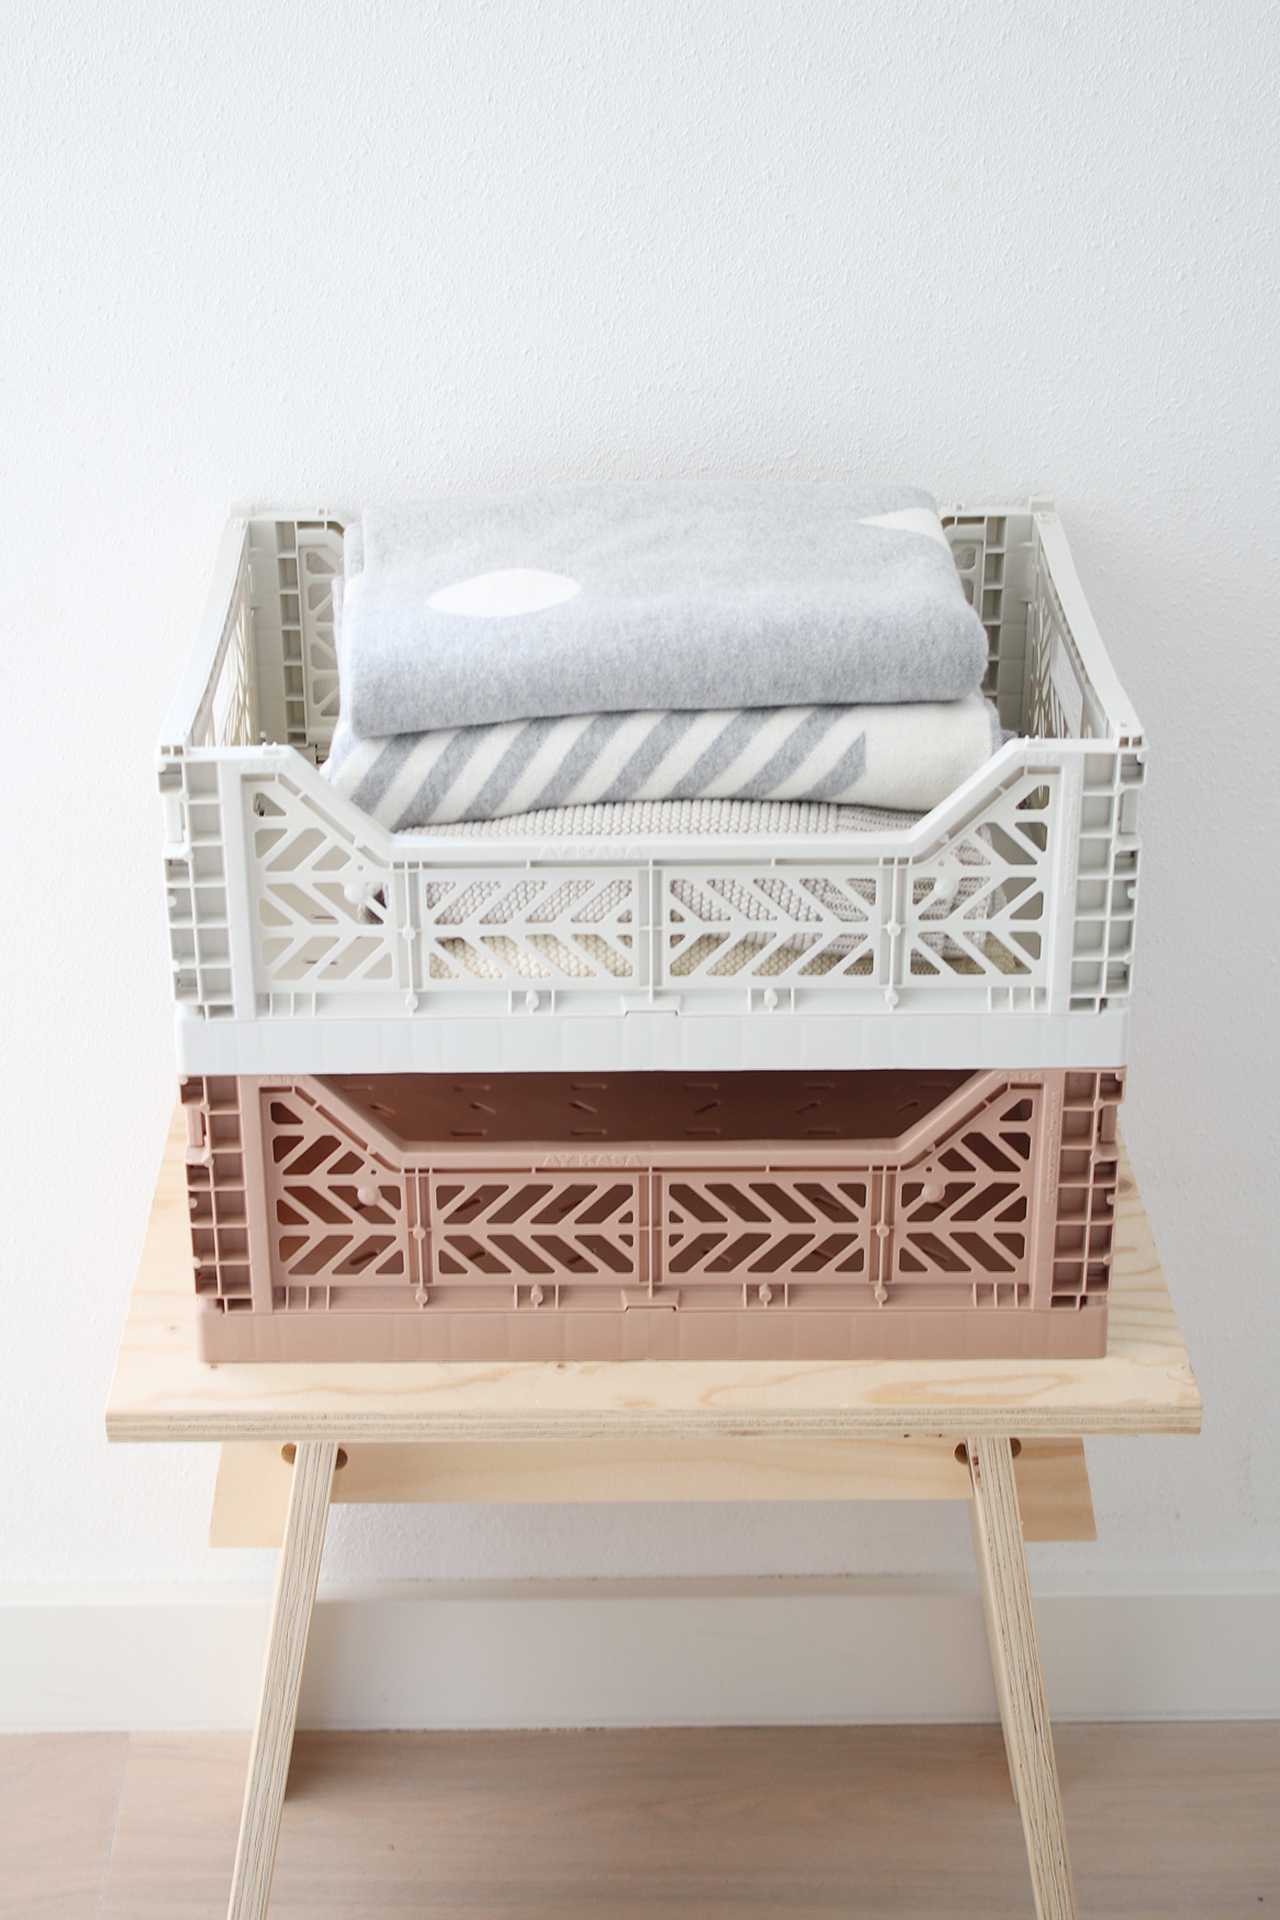 Folding Crate: Midi Stackable Storage Crate - Warm Taupe Folding Crates - Bon Tot